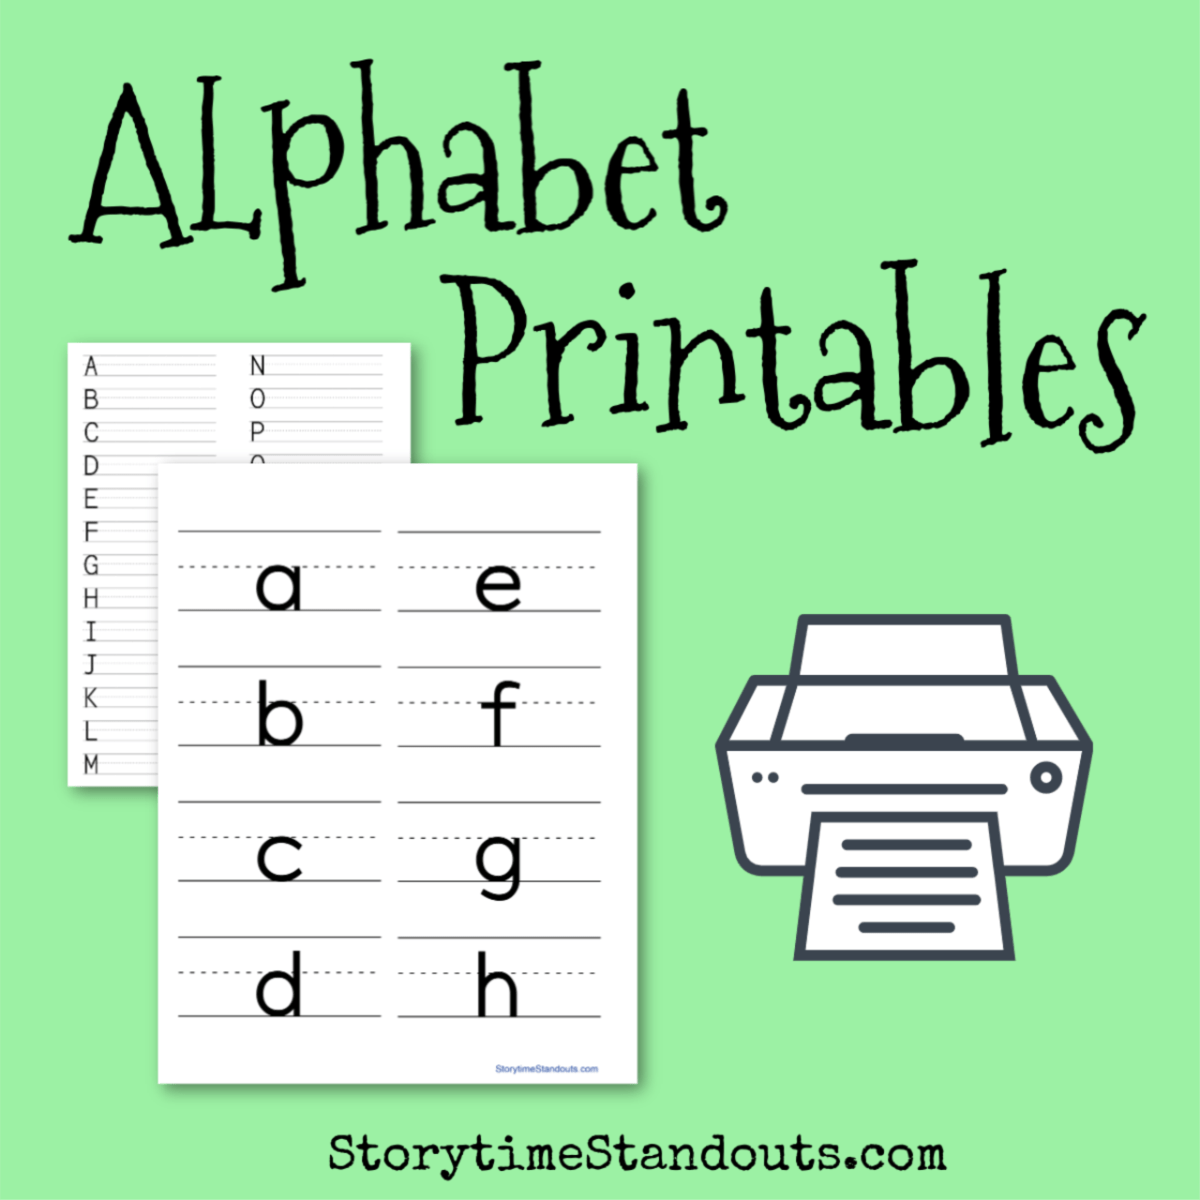 15 Awesome Printable Alphabets Plus Games For Teaching Letters